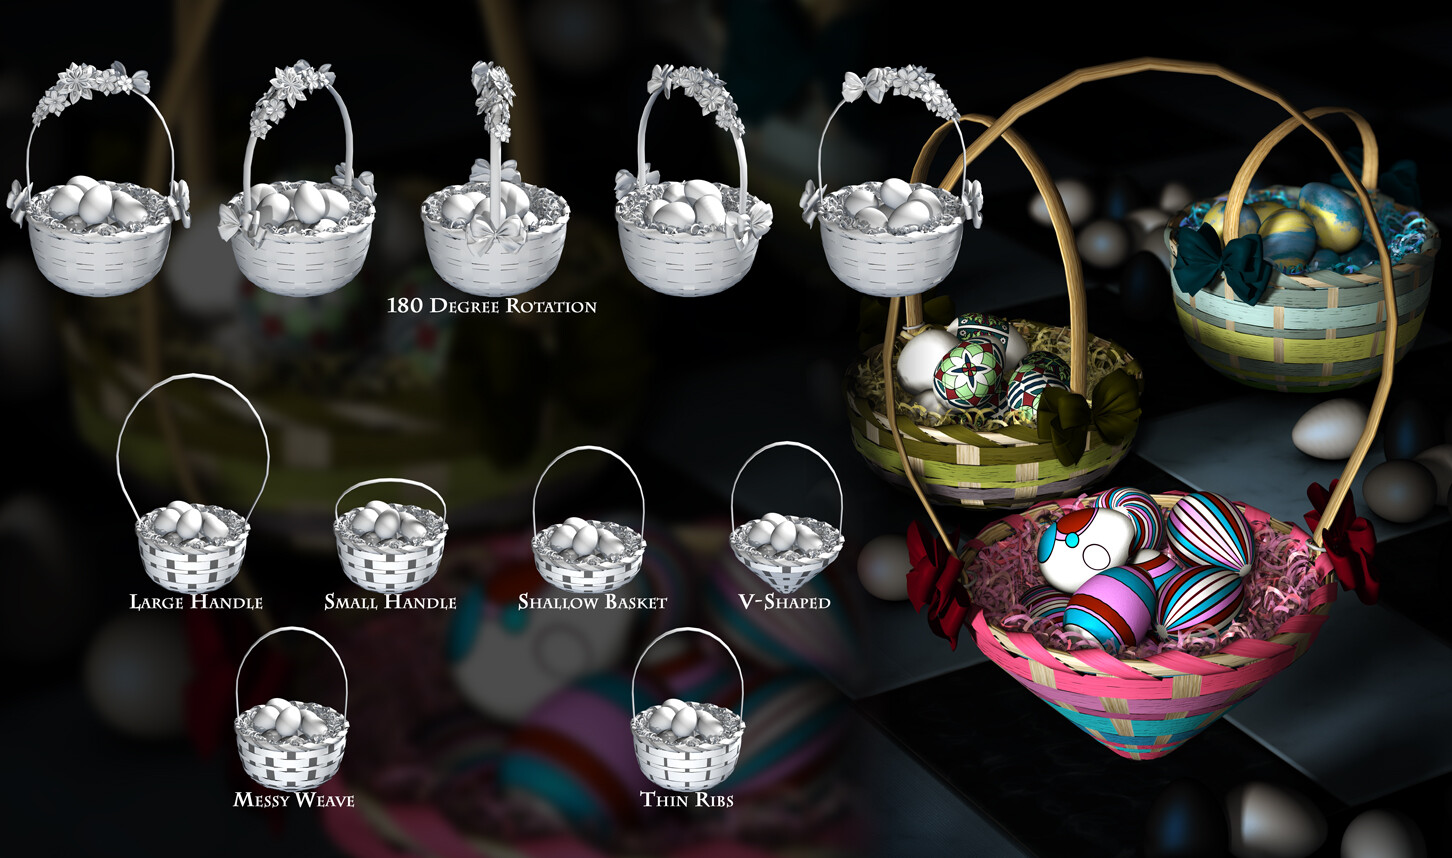 Here are the morph/shape options for the baskets.